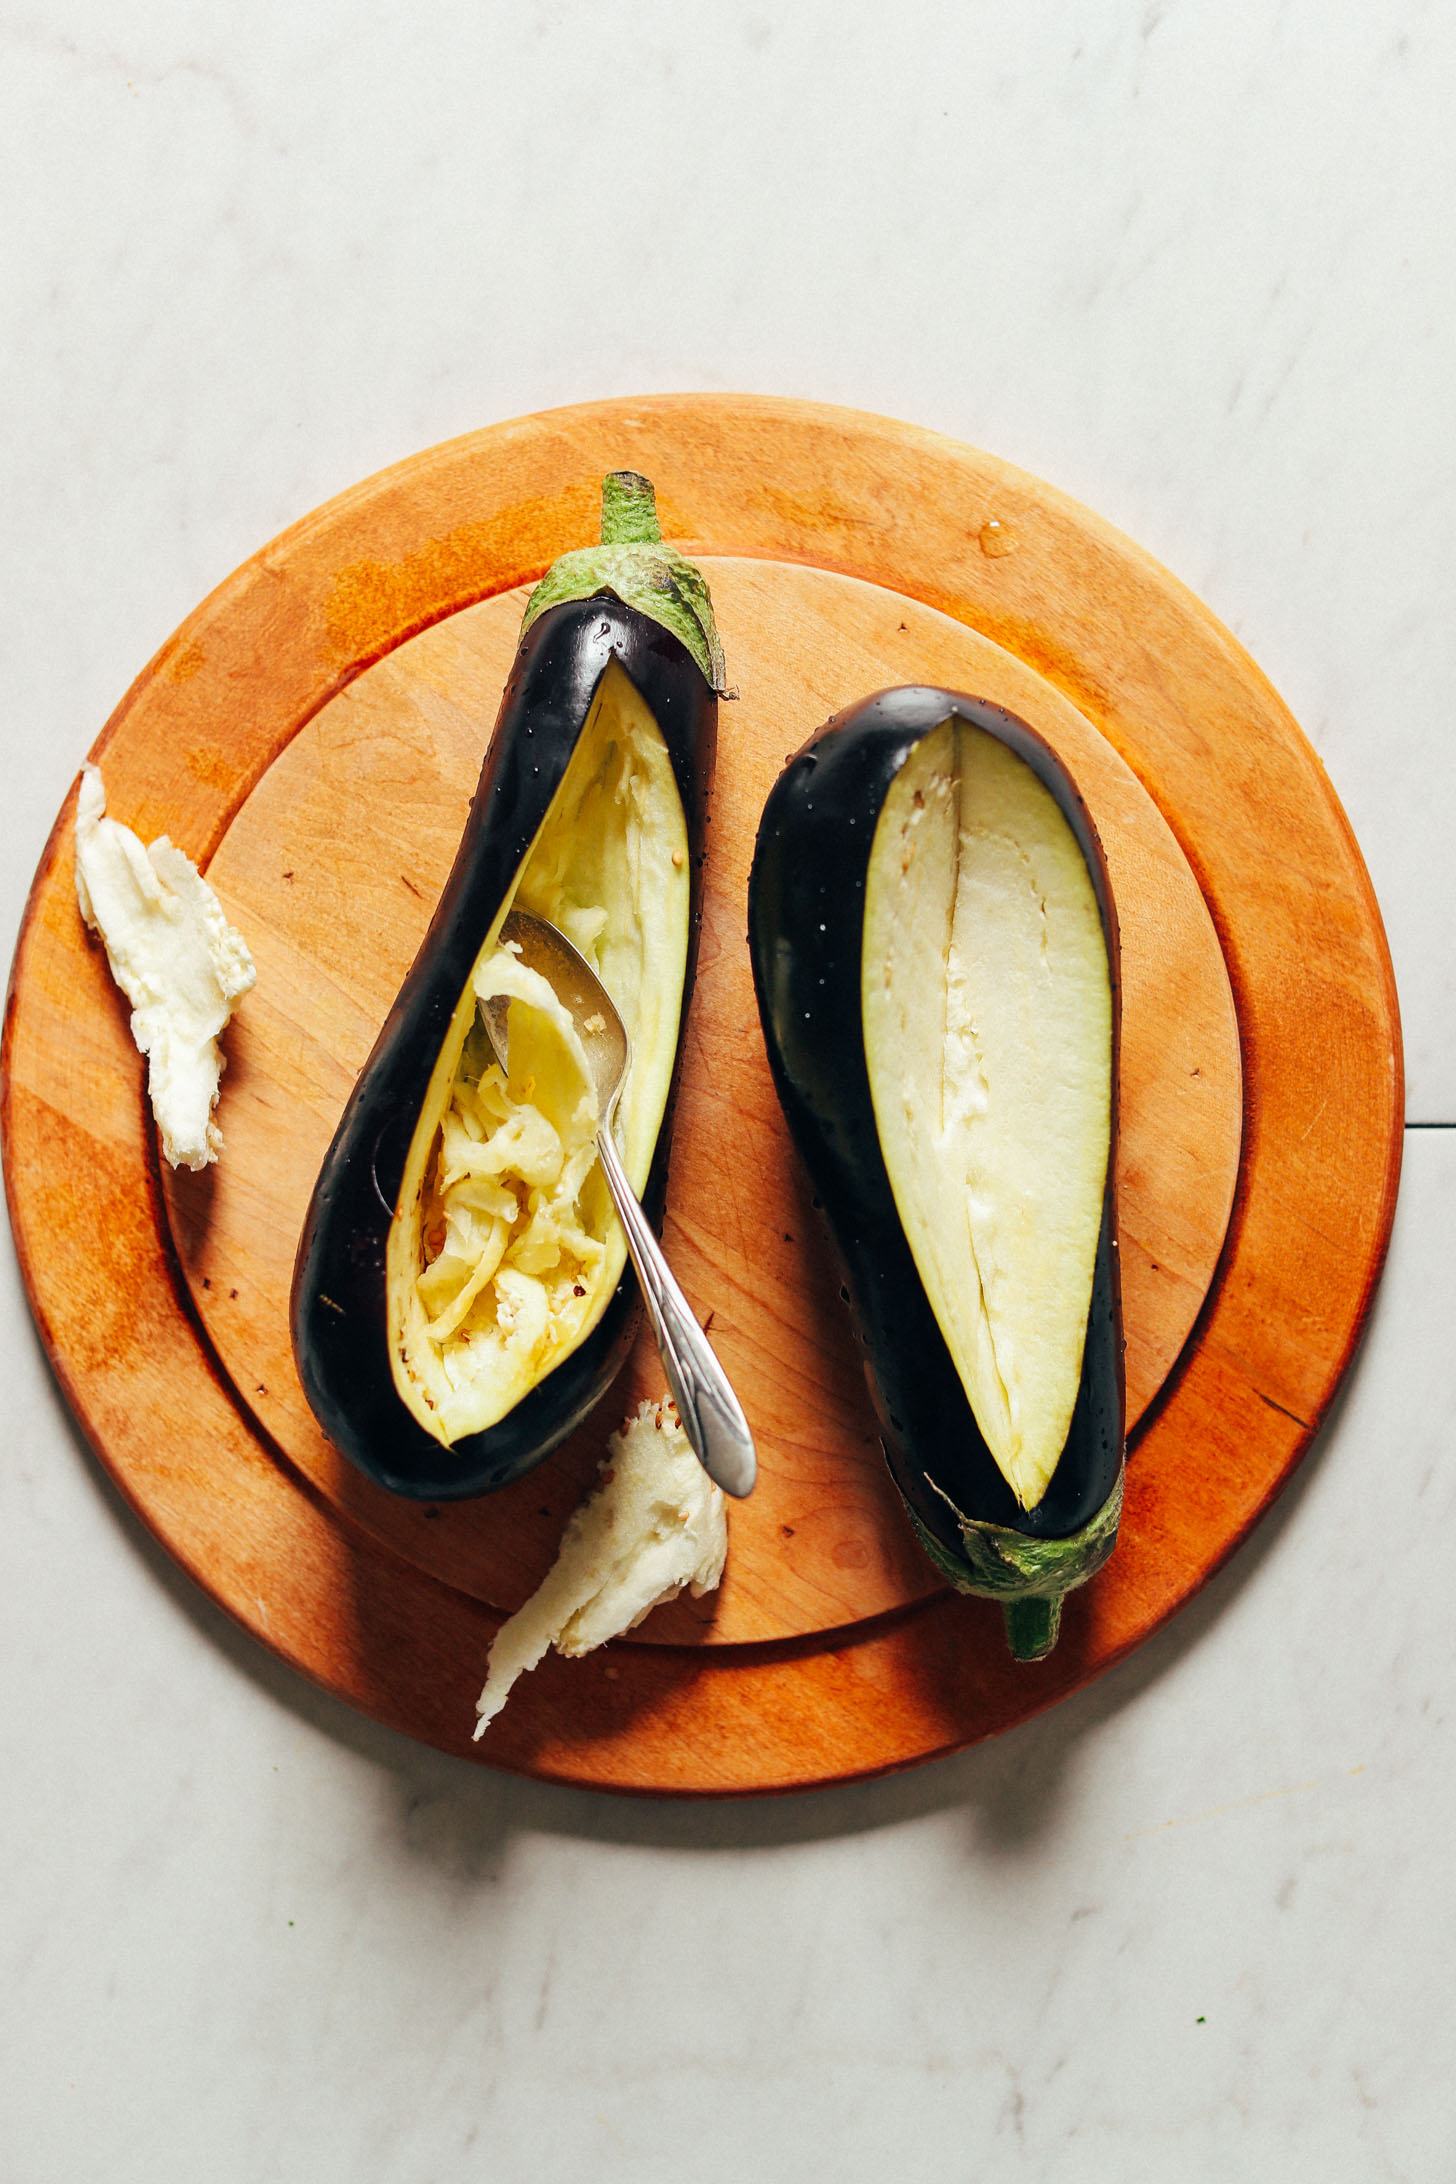 Scooping out flesh from eggplants for making Moroccan Lentil-Stuffed Eggplant